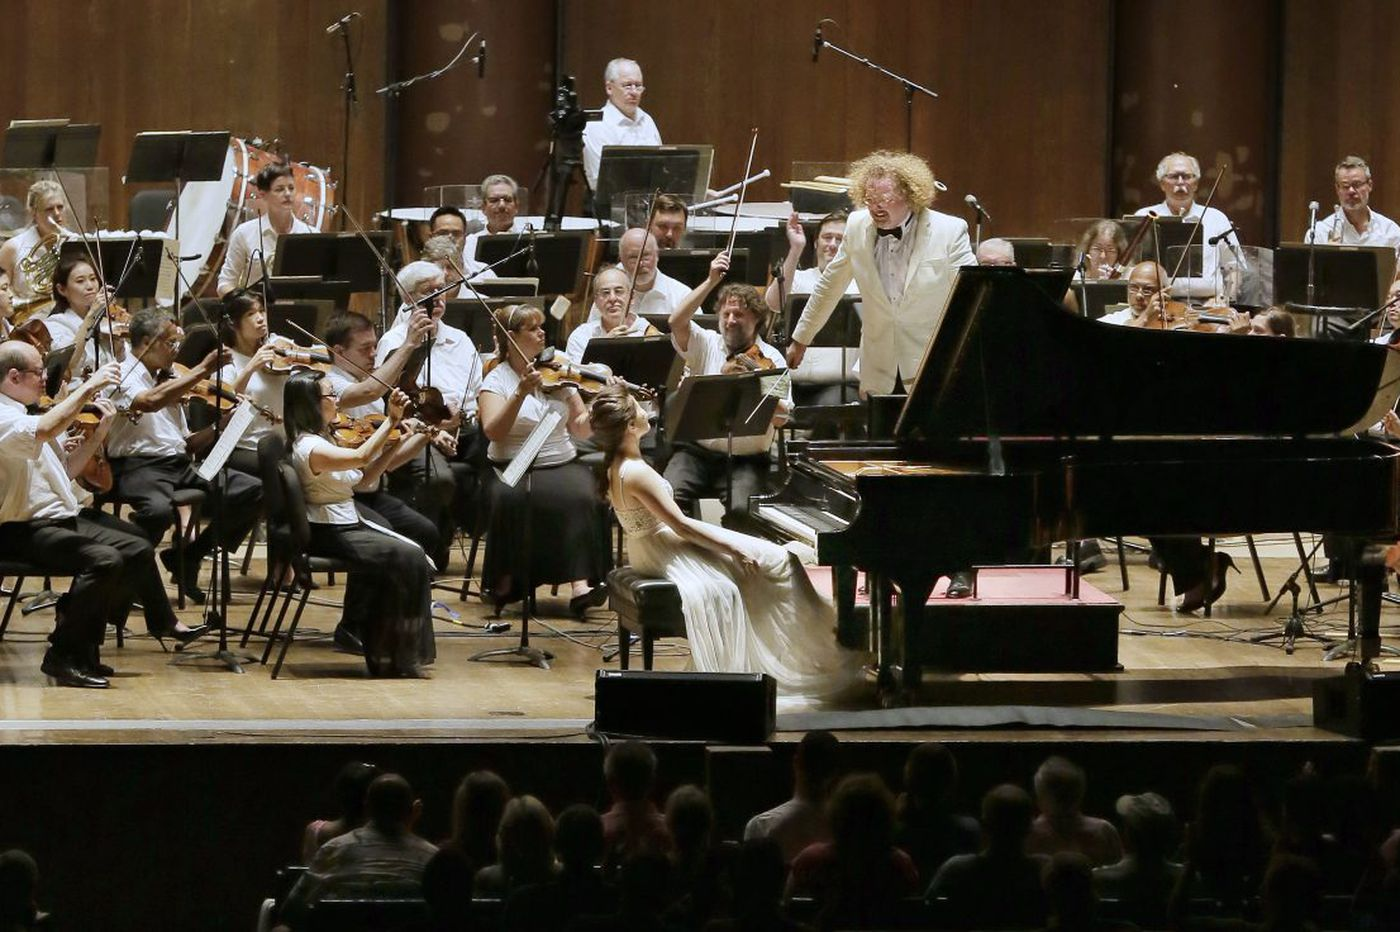 Young pianist shines at orchestra's Mann Center Tchaikovsky show